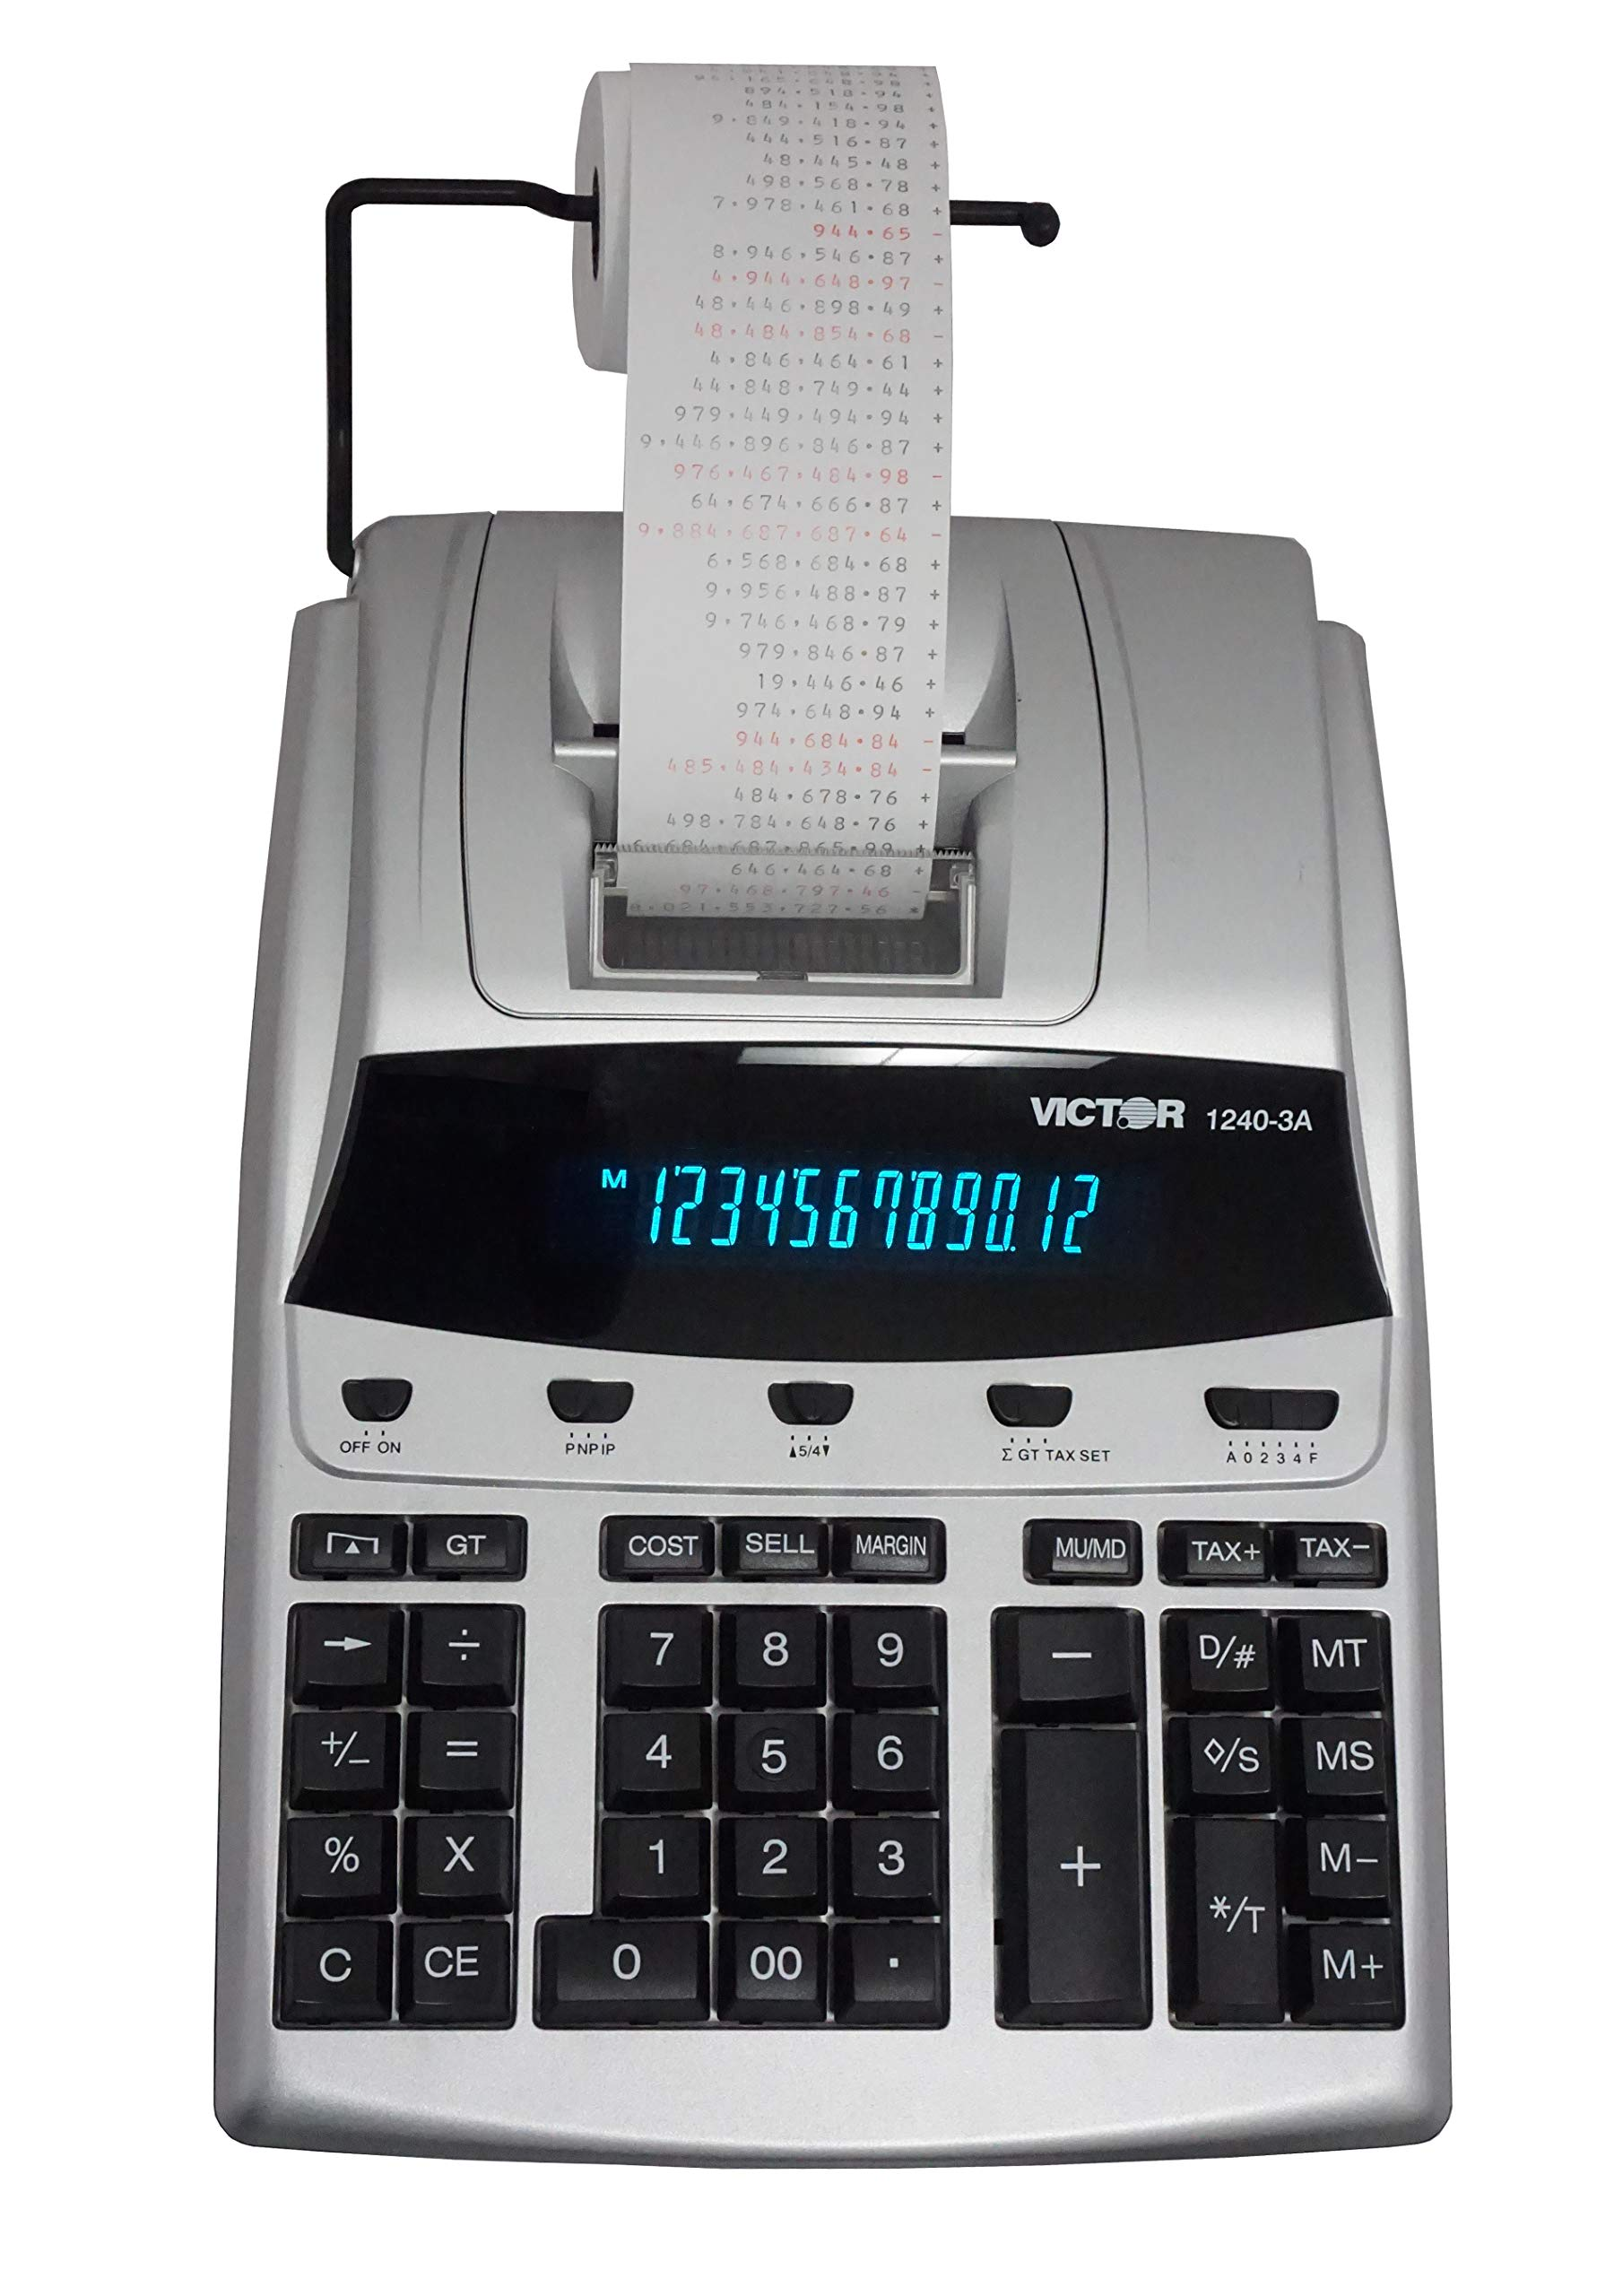 Victor 1240-3A 12 Digit Heavy Duty Commercial Printing Calculator by Victor